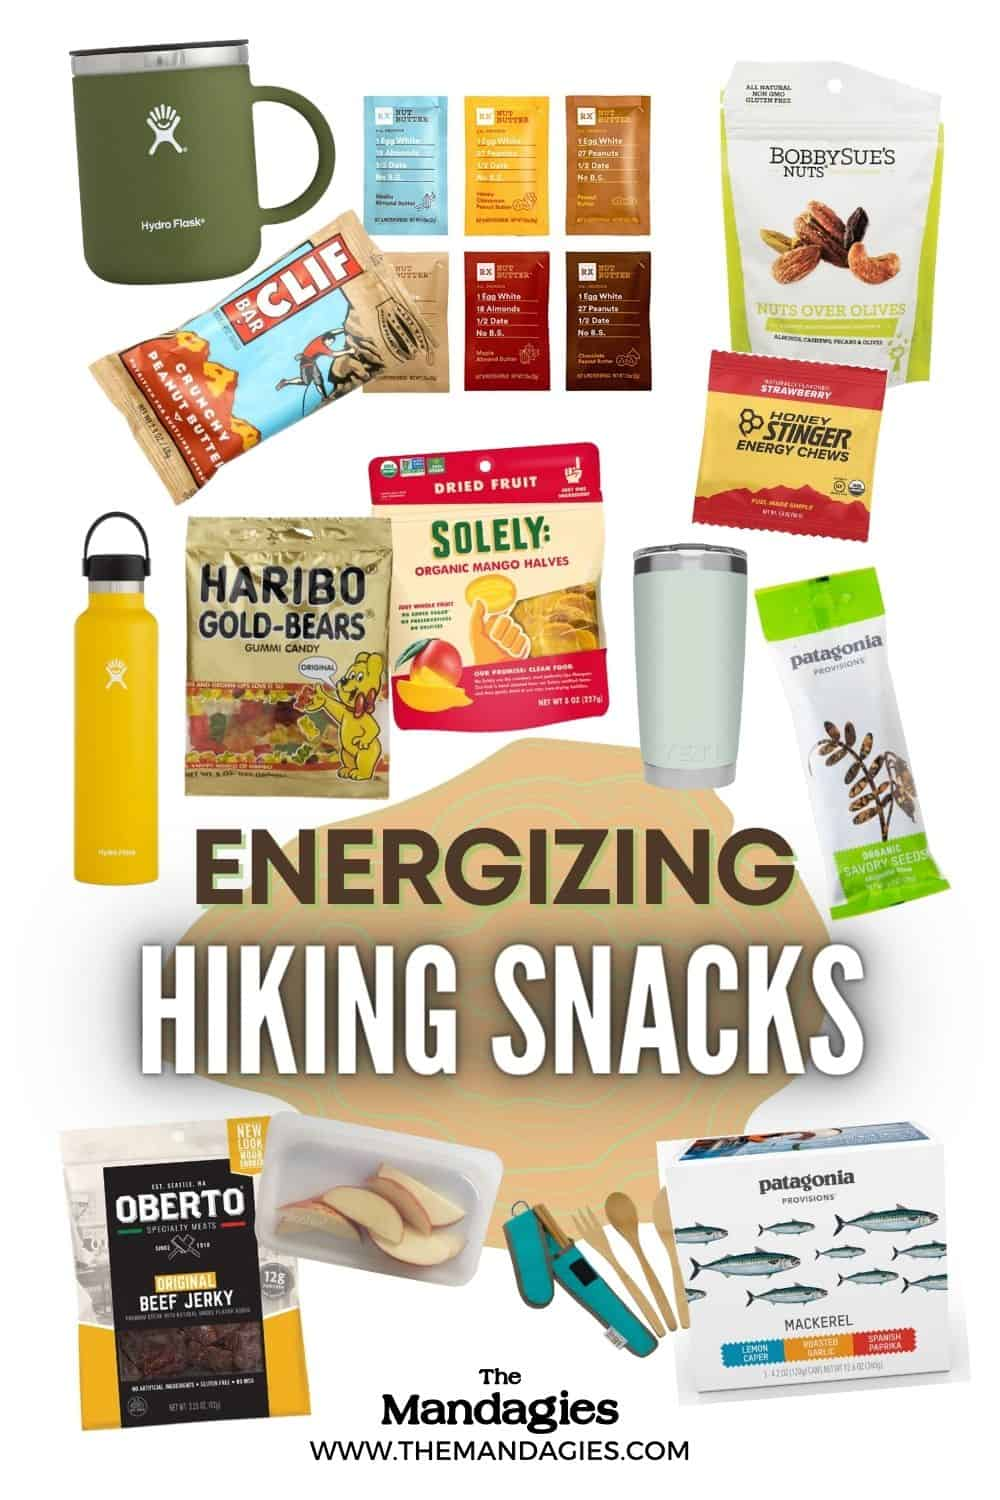 What should you pack for your next fun day hike? We're sharing the best hiking snacks to bring on your backpacking trip, including trail mix, granola, protein bars, dried fruit, healthy fats, nut butter and so much more to keep you energized on your outdoor adventure! #hiking #snacks #healthysnacks #hikingsnacks #proteinbars #trailmix